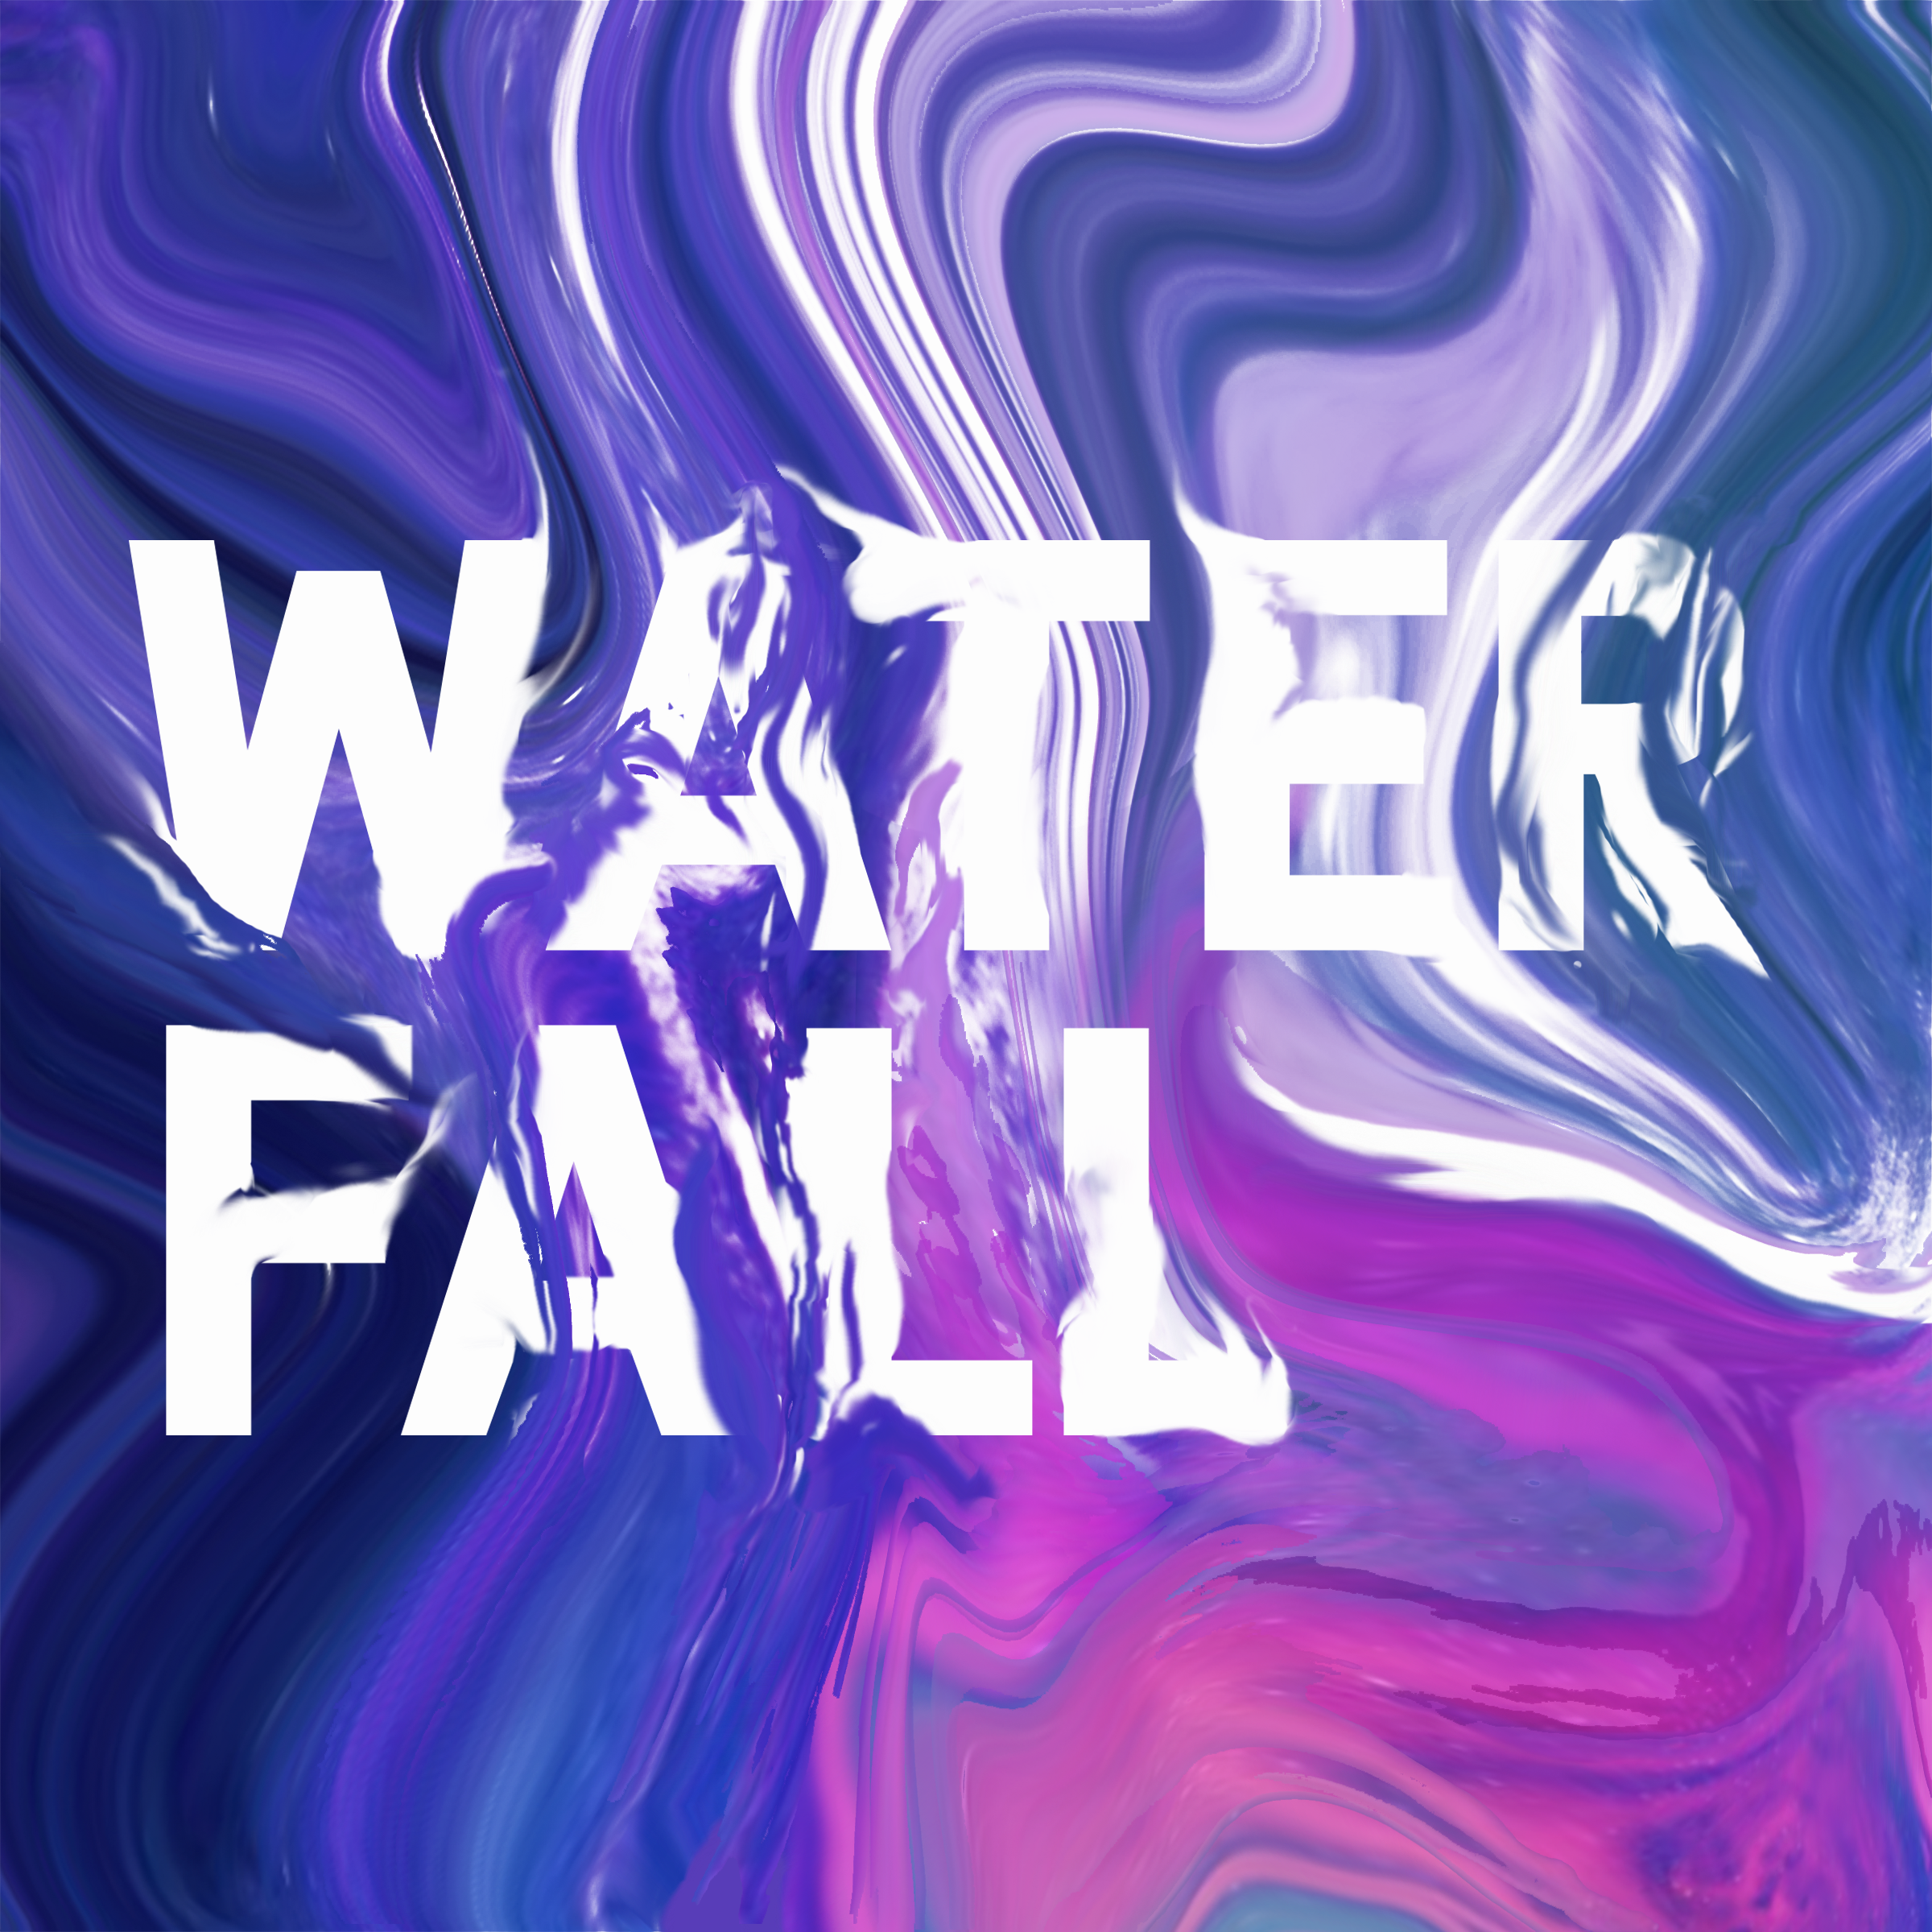 """Waterfall - Petit Biscuit    This week on #NewMusicMonday, I'm featuring an energetic electronic track called """"Waterfall"""" by French DJ and producer..."""